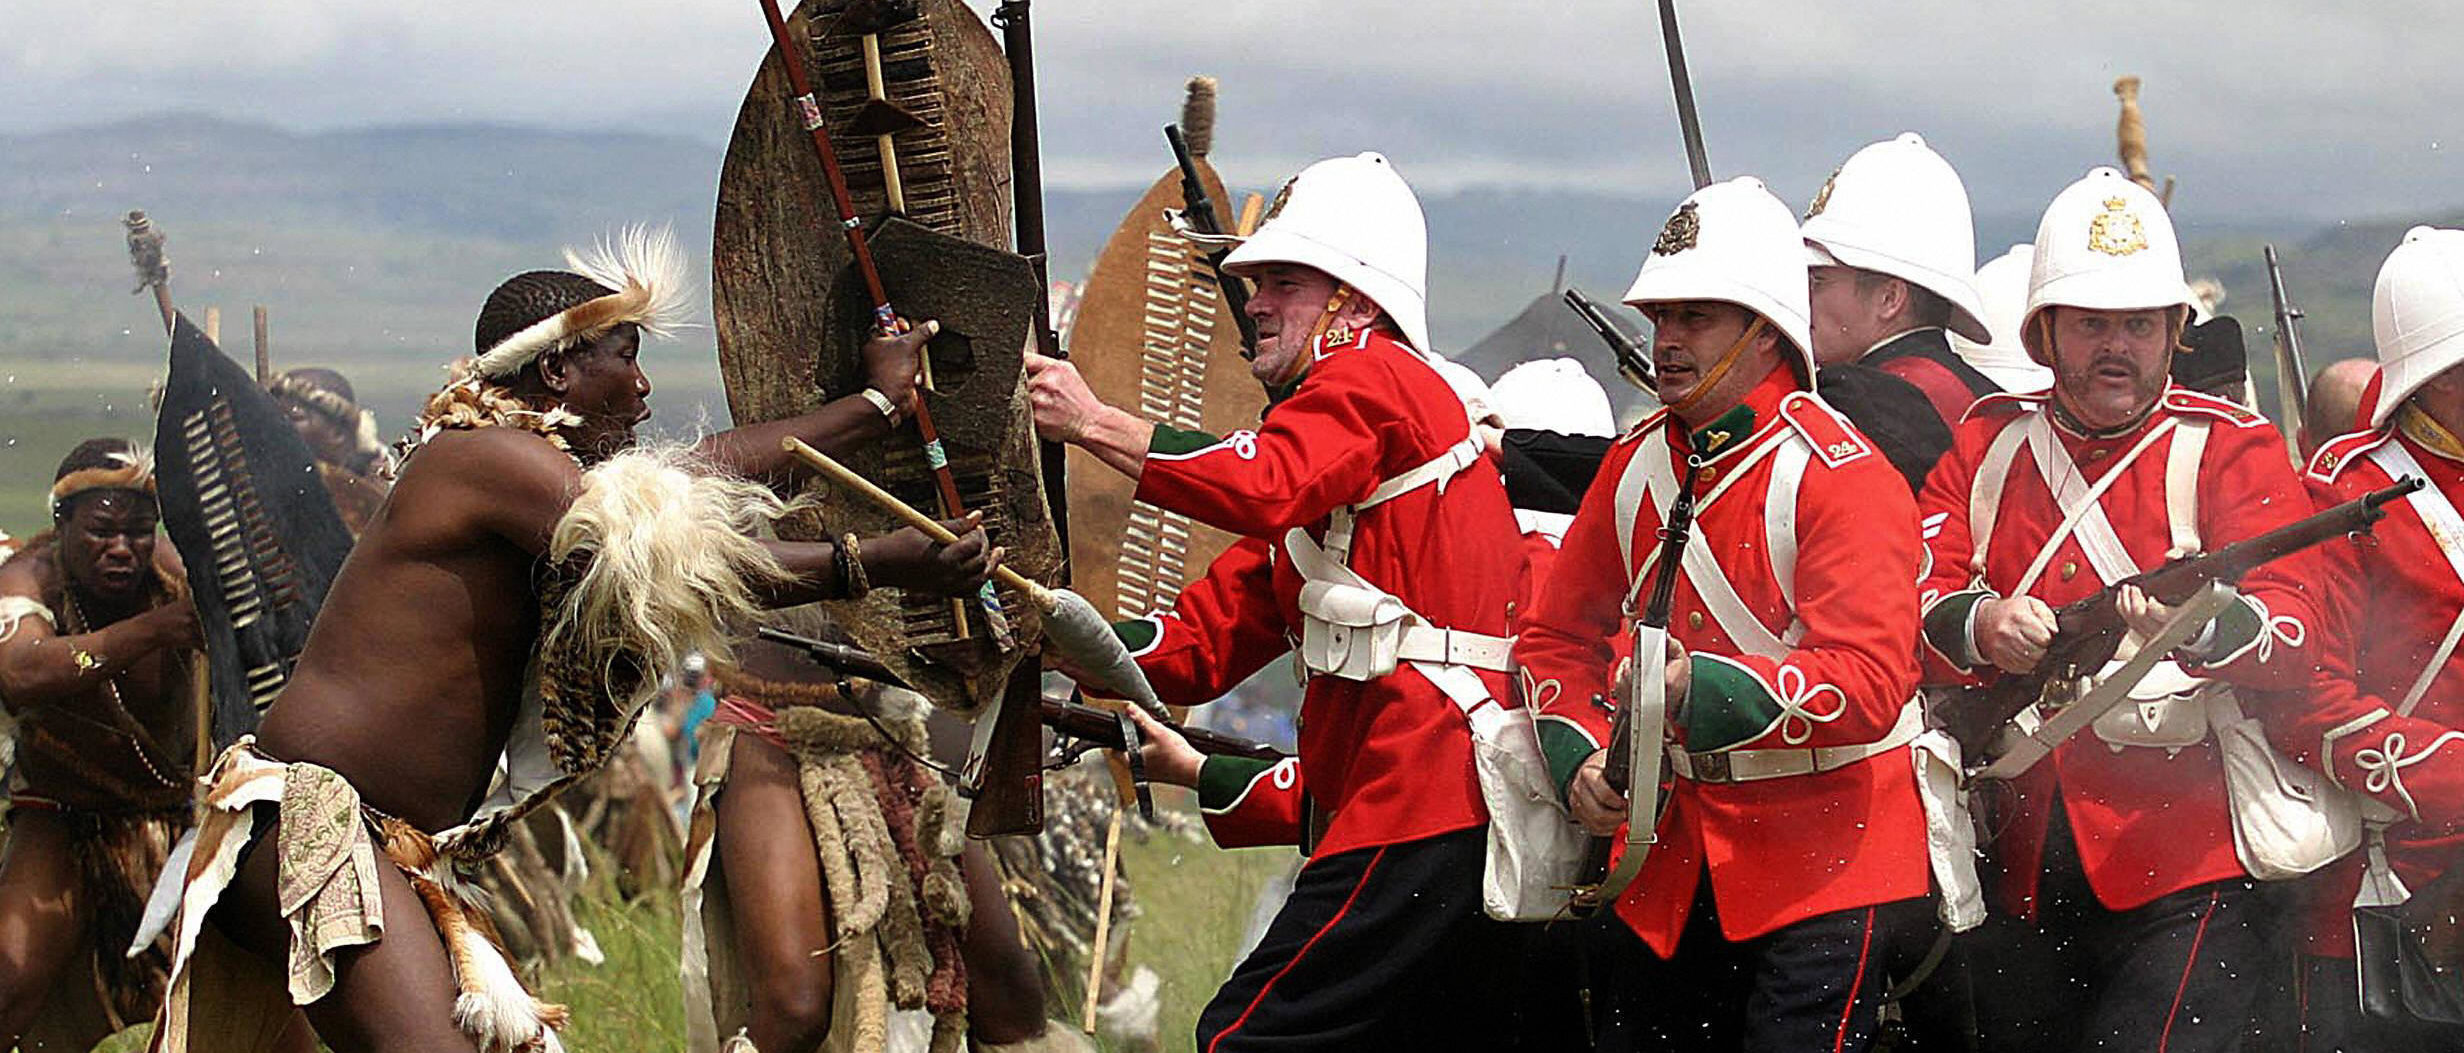 A group in British uniforms is assailed by Zulu warriors during the 125th Anniversary re-enactment of the battle of Isandlwana. AFP / Ajesh Jantilal